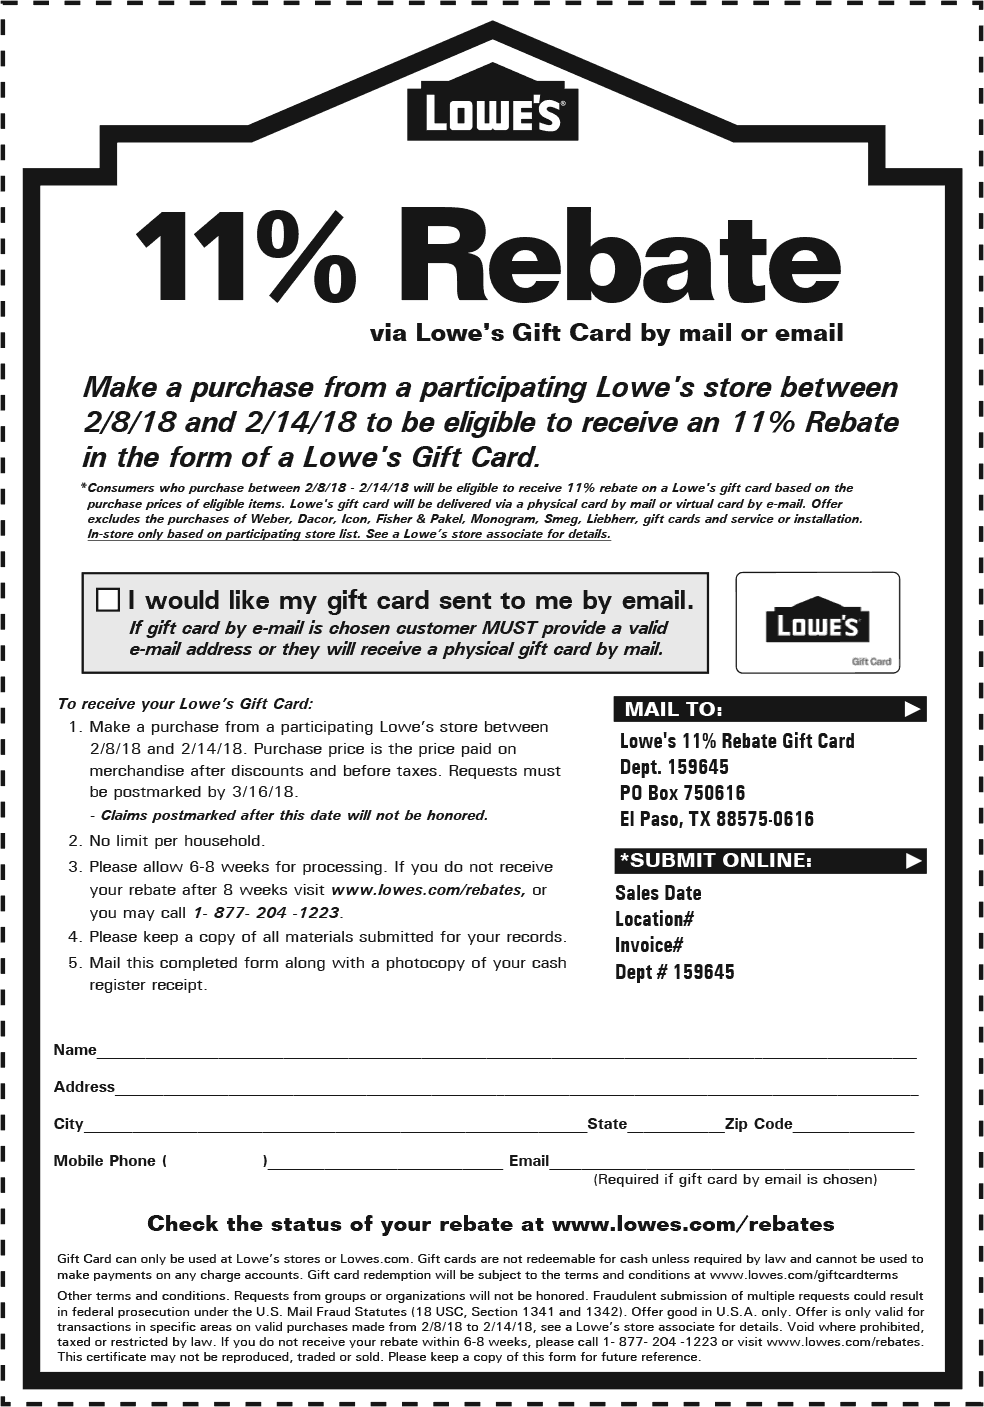 Lowes Coupon February 2020 11% rebate on purchases made thru the 14th at Lowes